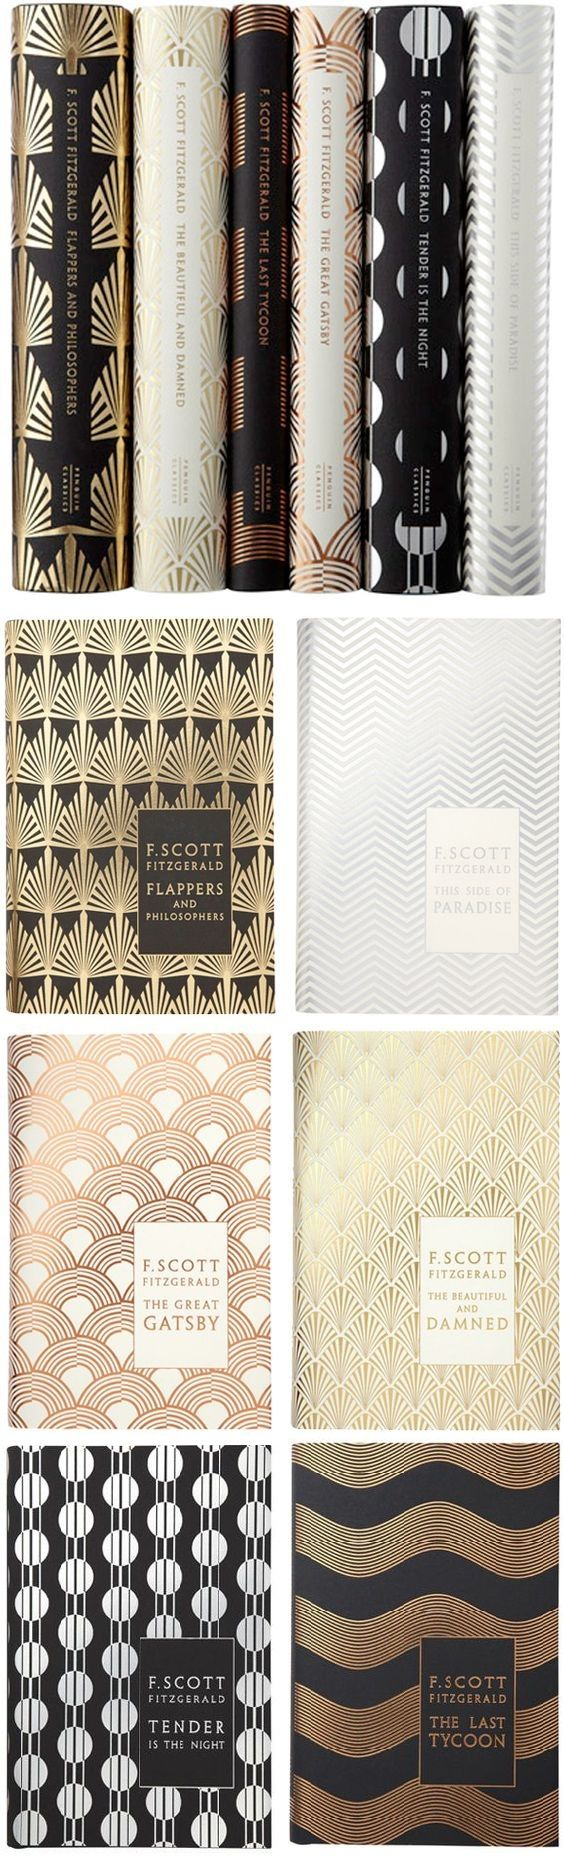 Flappers and Philosophers. This Side of Paradise. The Great Gatsby. The Beautiful and Damned. Tender is the Night. The Last Tycoon. F. Scott Fitzgerald.